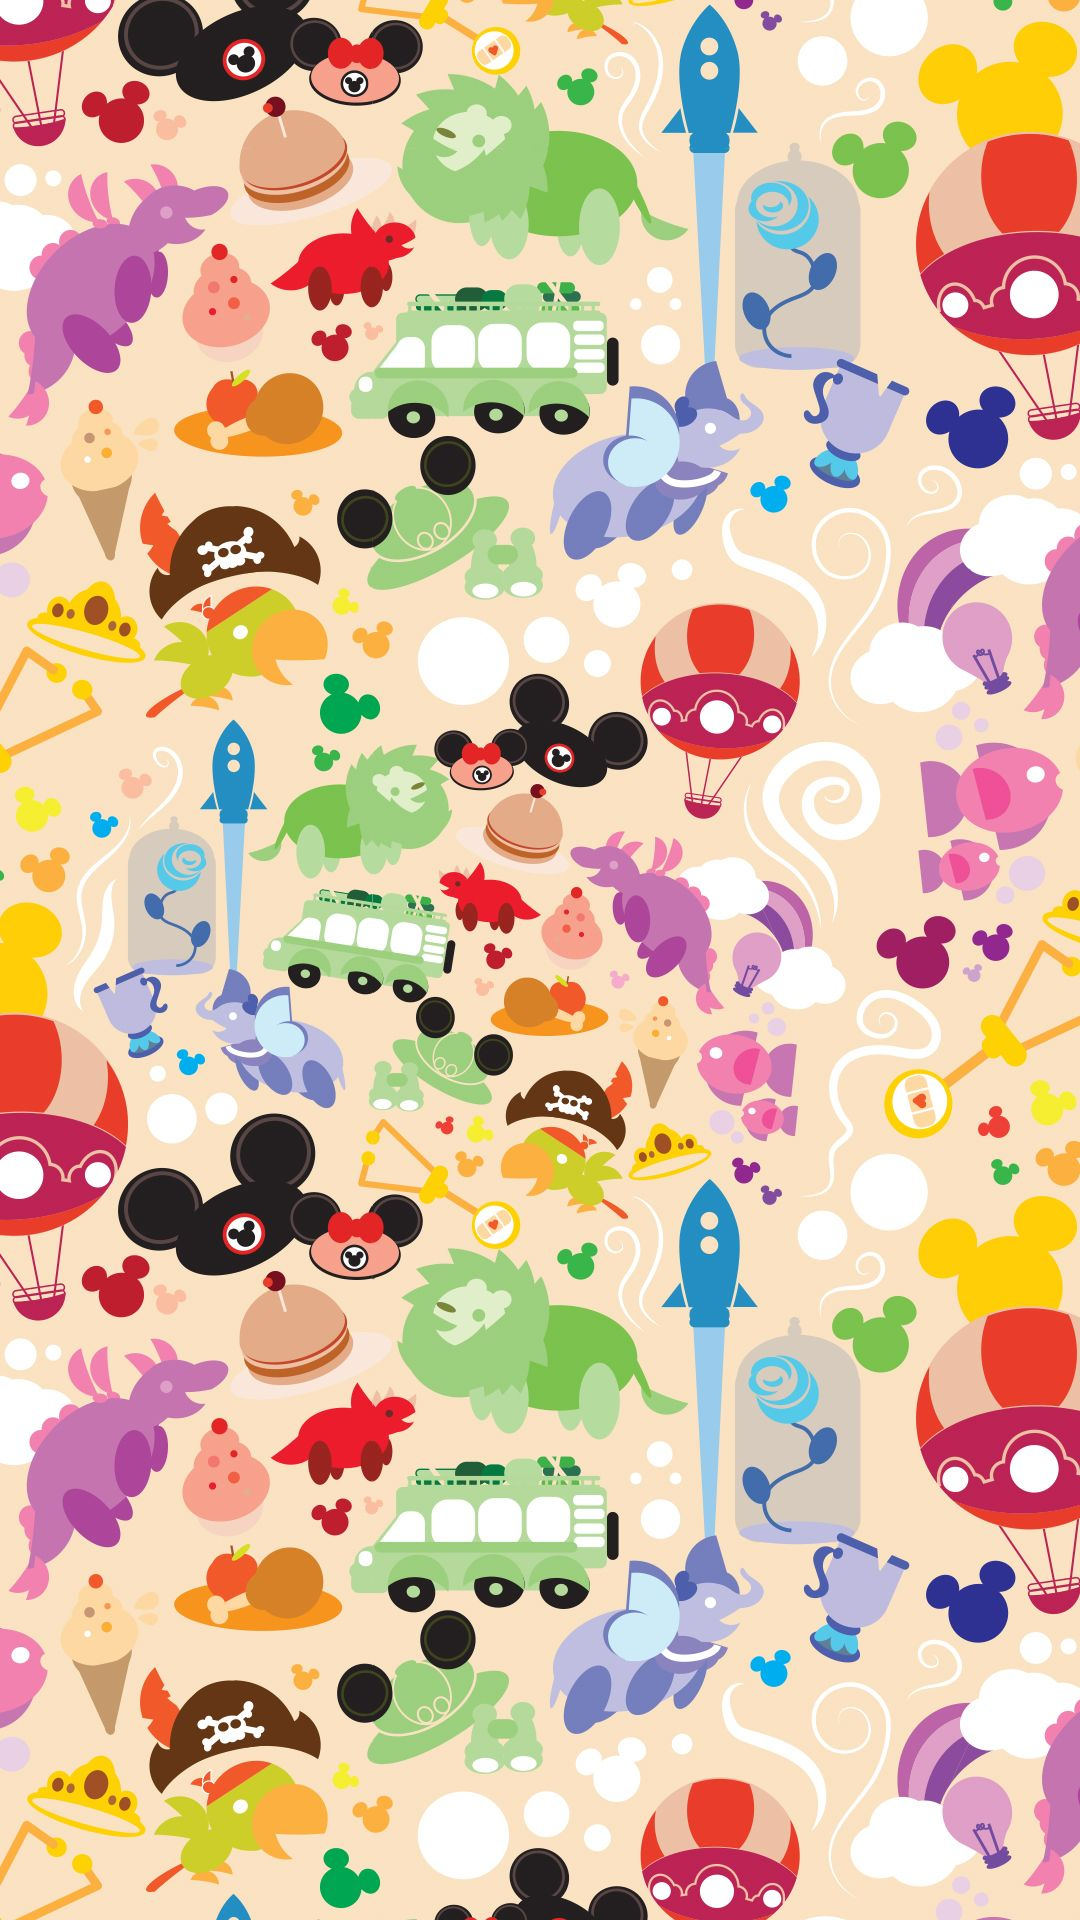 Wallpaper iphone tumblr toy story - Disney Wallpaper Google